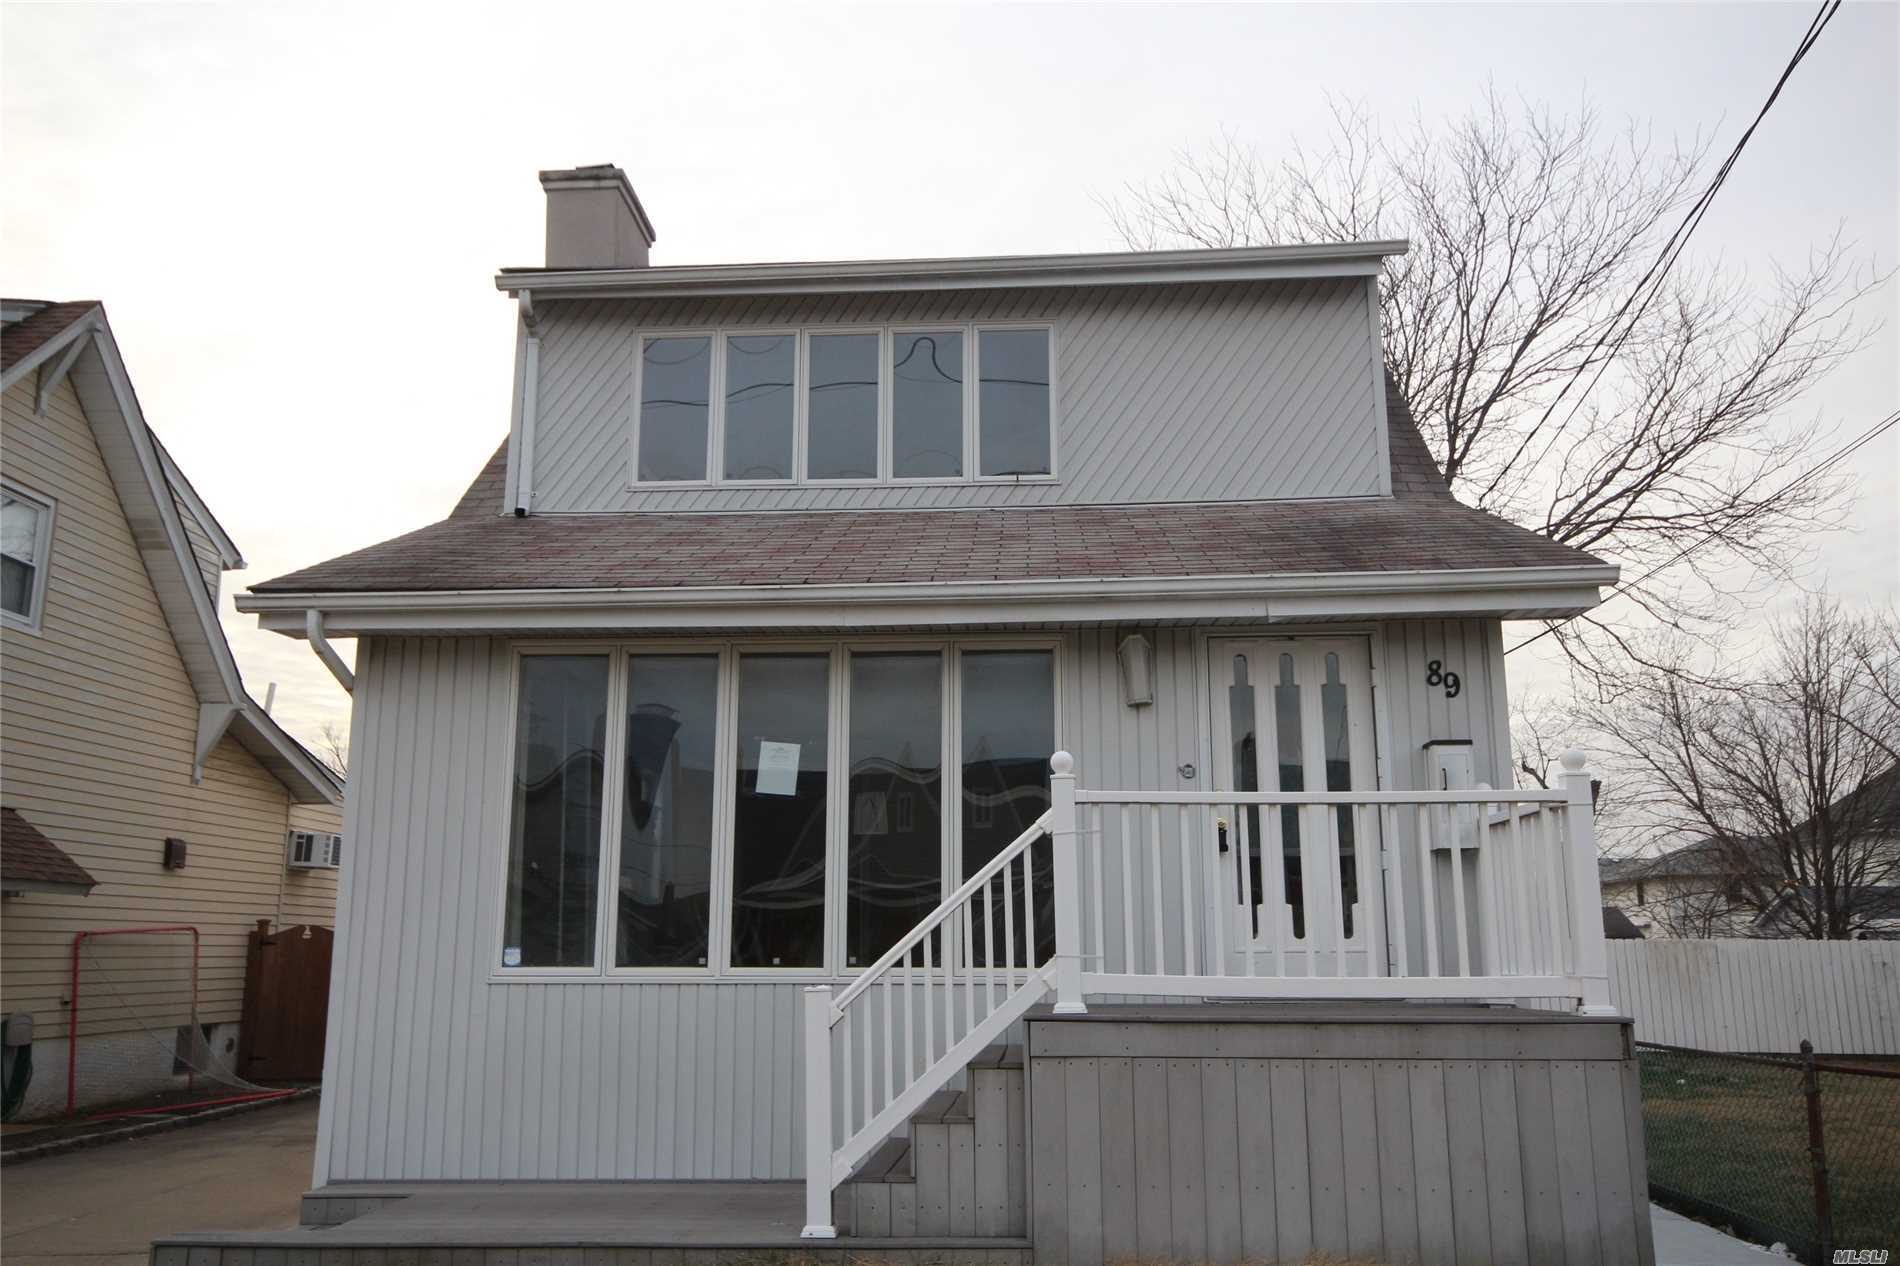 Detached Single Family Colonial With Detached One Car Garage And Full/Unfinished Basement Located In The East Rockaway Section Of Nassau County. Property Features A Spacious Living Room/ Dining Room Combination, An Eat In Kitchen, Three Bedrooms, And Two Full Bathrooms. Truly A Must See!